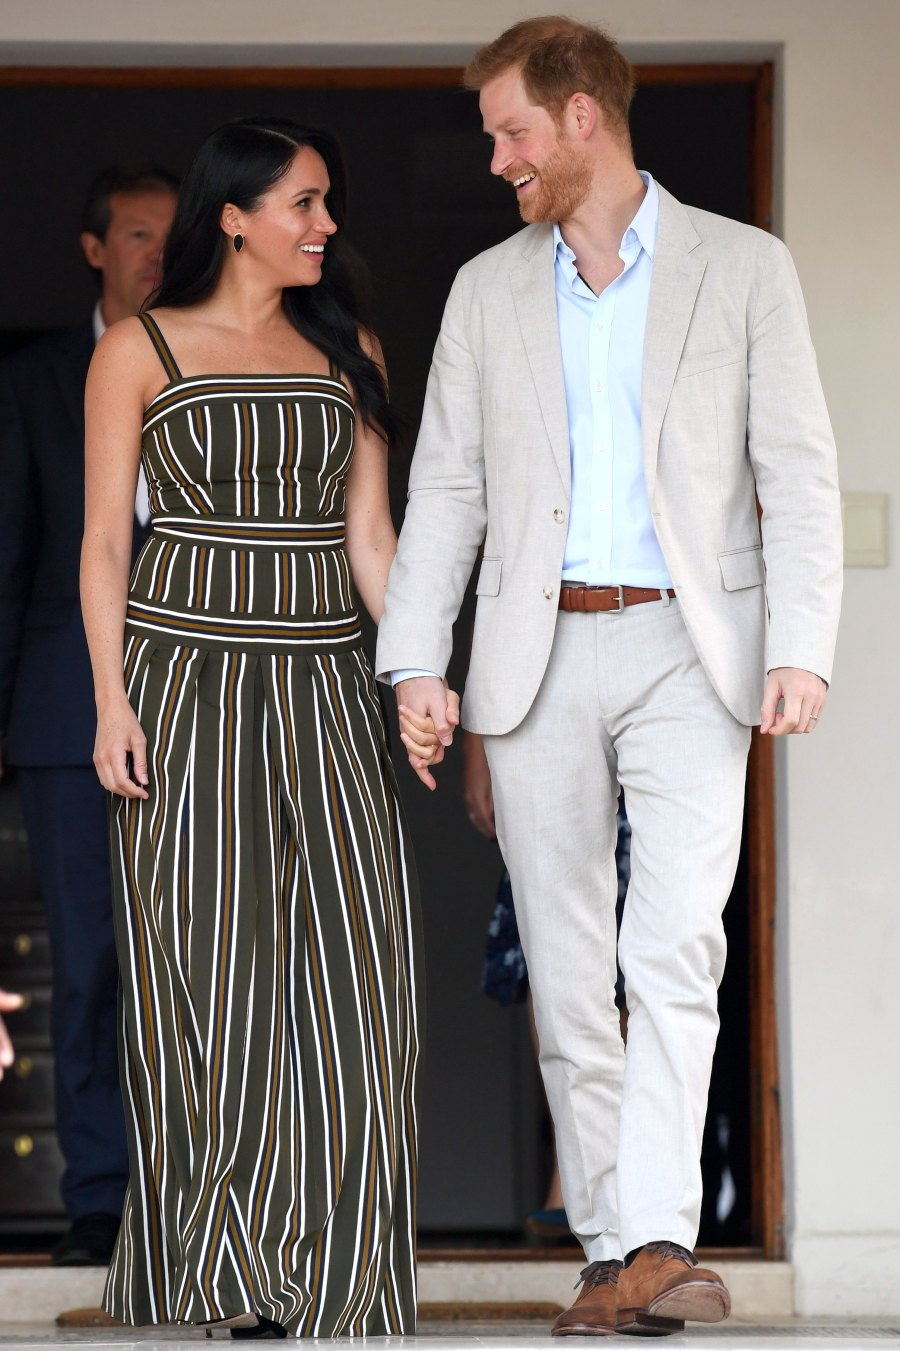 Prince Harry and Duchess Meghan Embark on Royal Tour of Africa With 4-Month-Old Son Archie